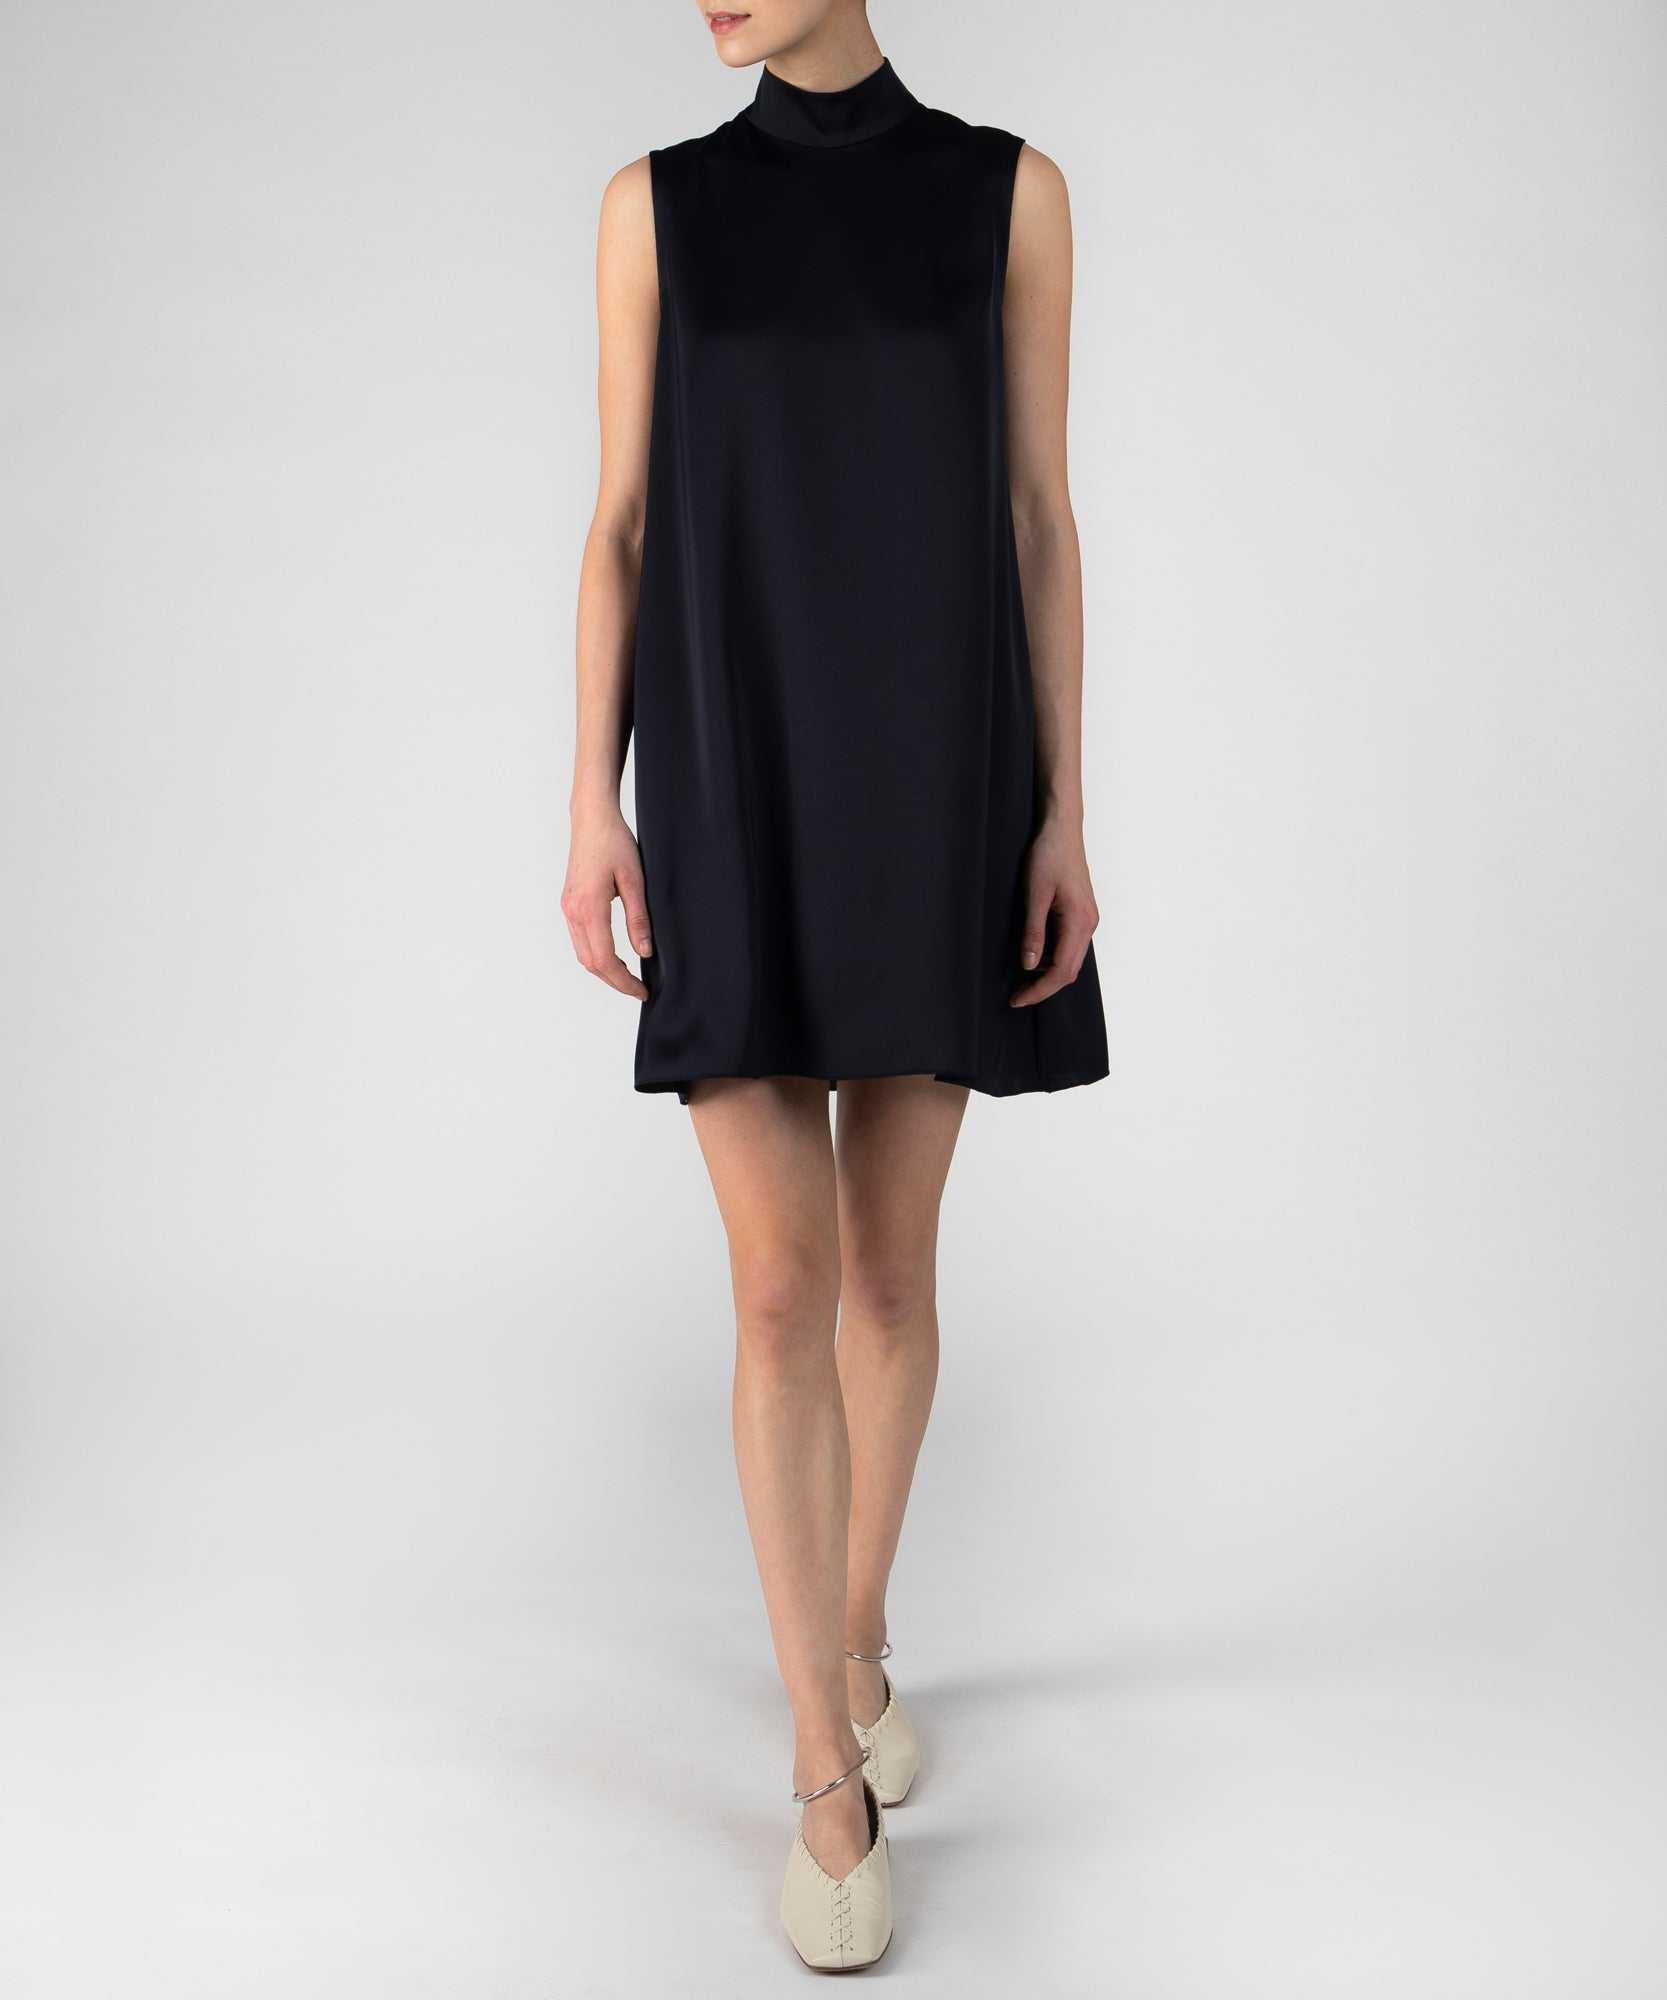 Deep Navy Sateen Mock Neck Dress - Women's Luxe Dress by ATM Anthony Thomas Melillo